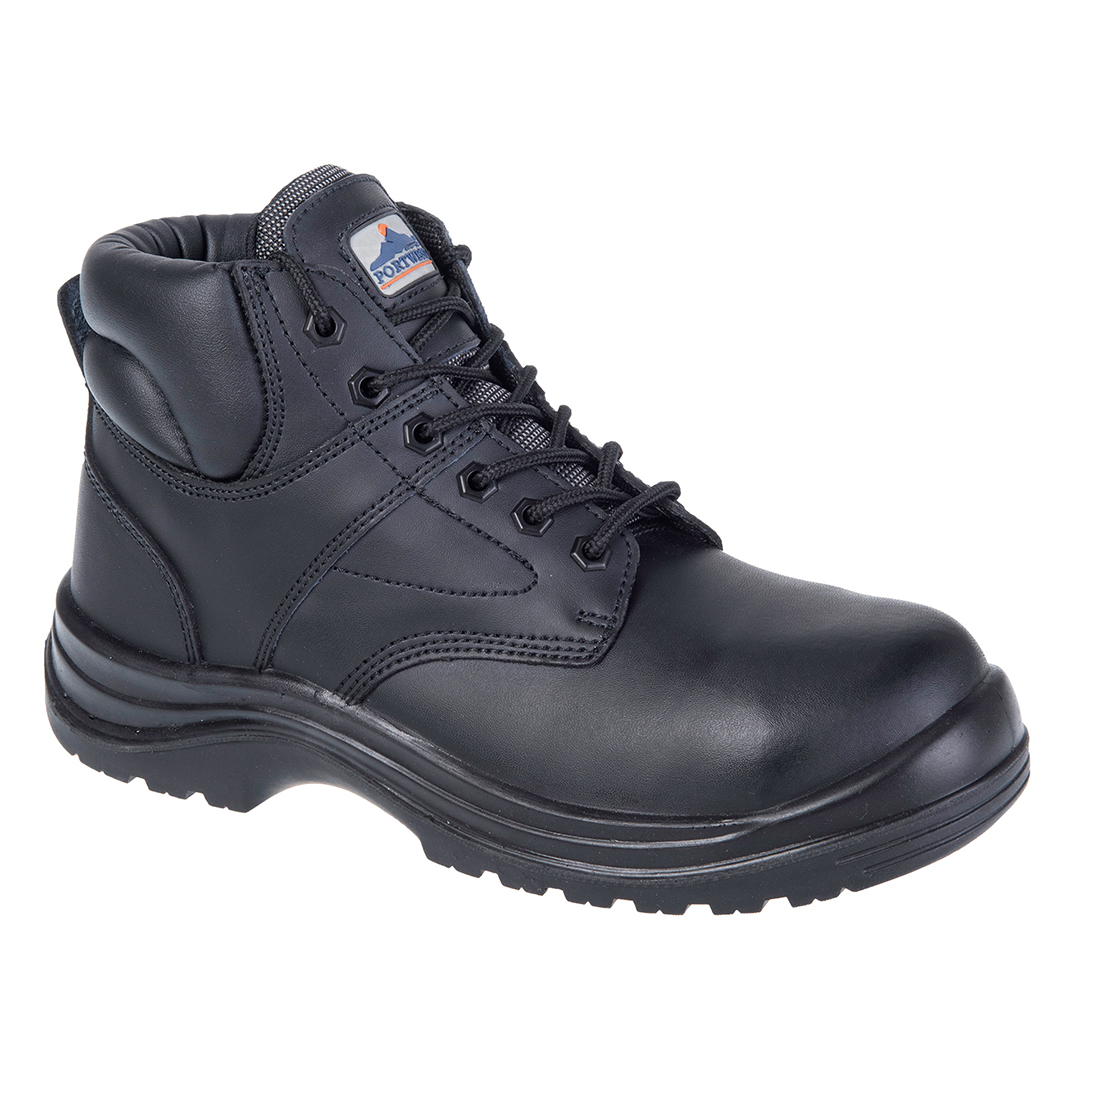 Steel D 13 Taille Noir Chaussure Travail Toe Cool Atlanta